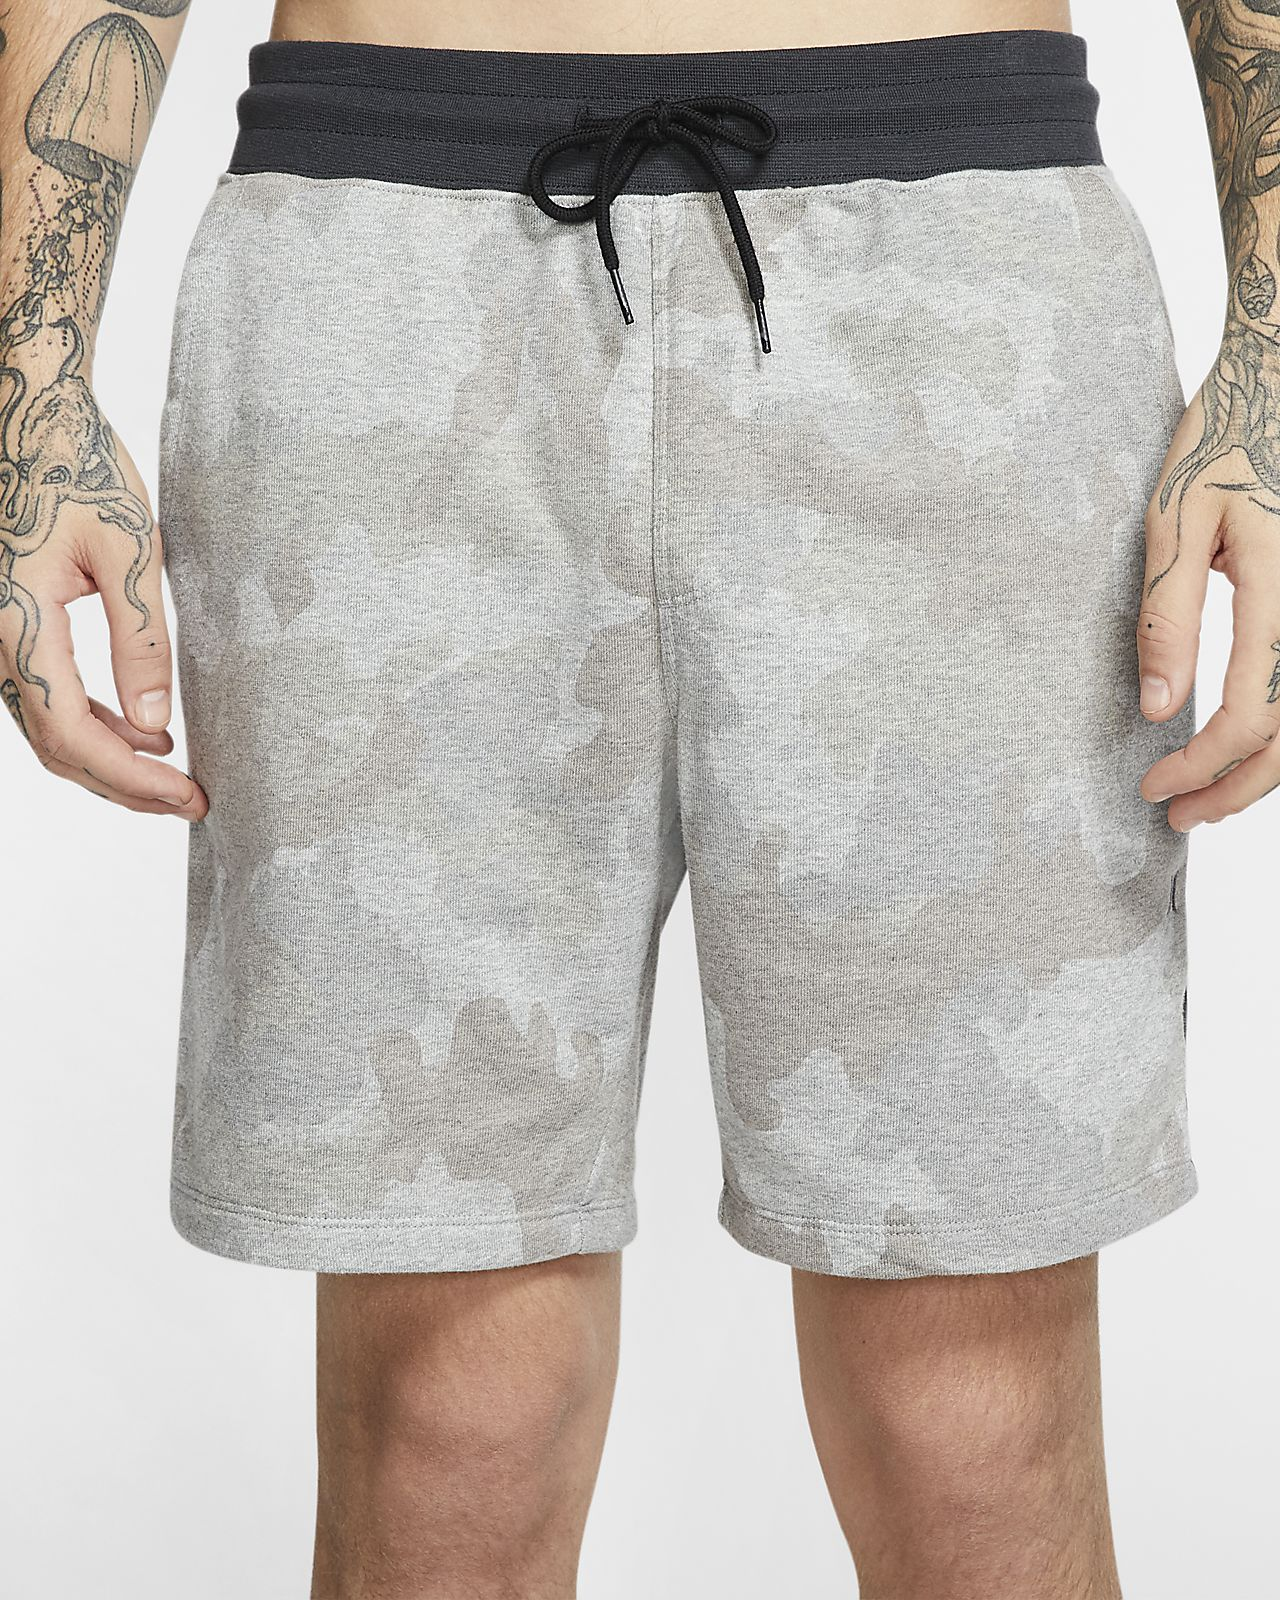 Hurley Dri-FIT Naturals Men's Fleece Shorts